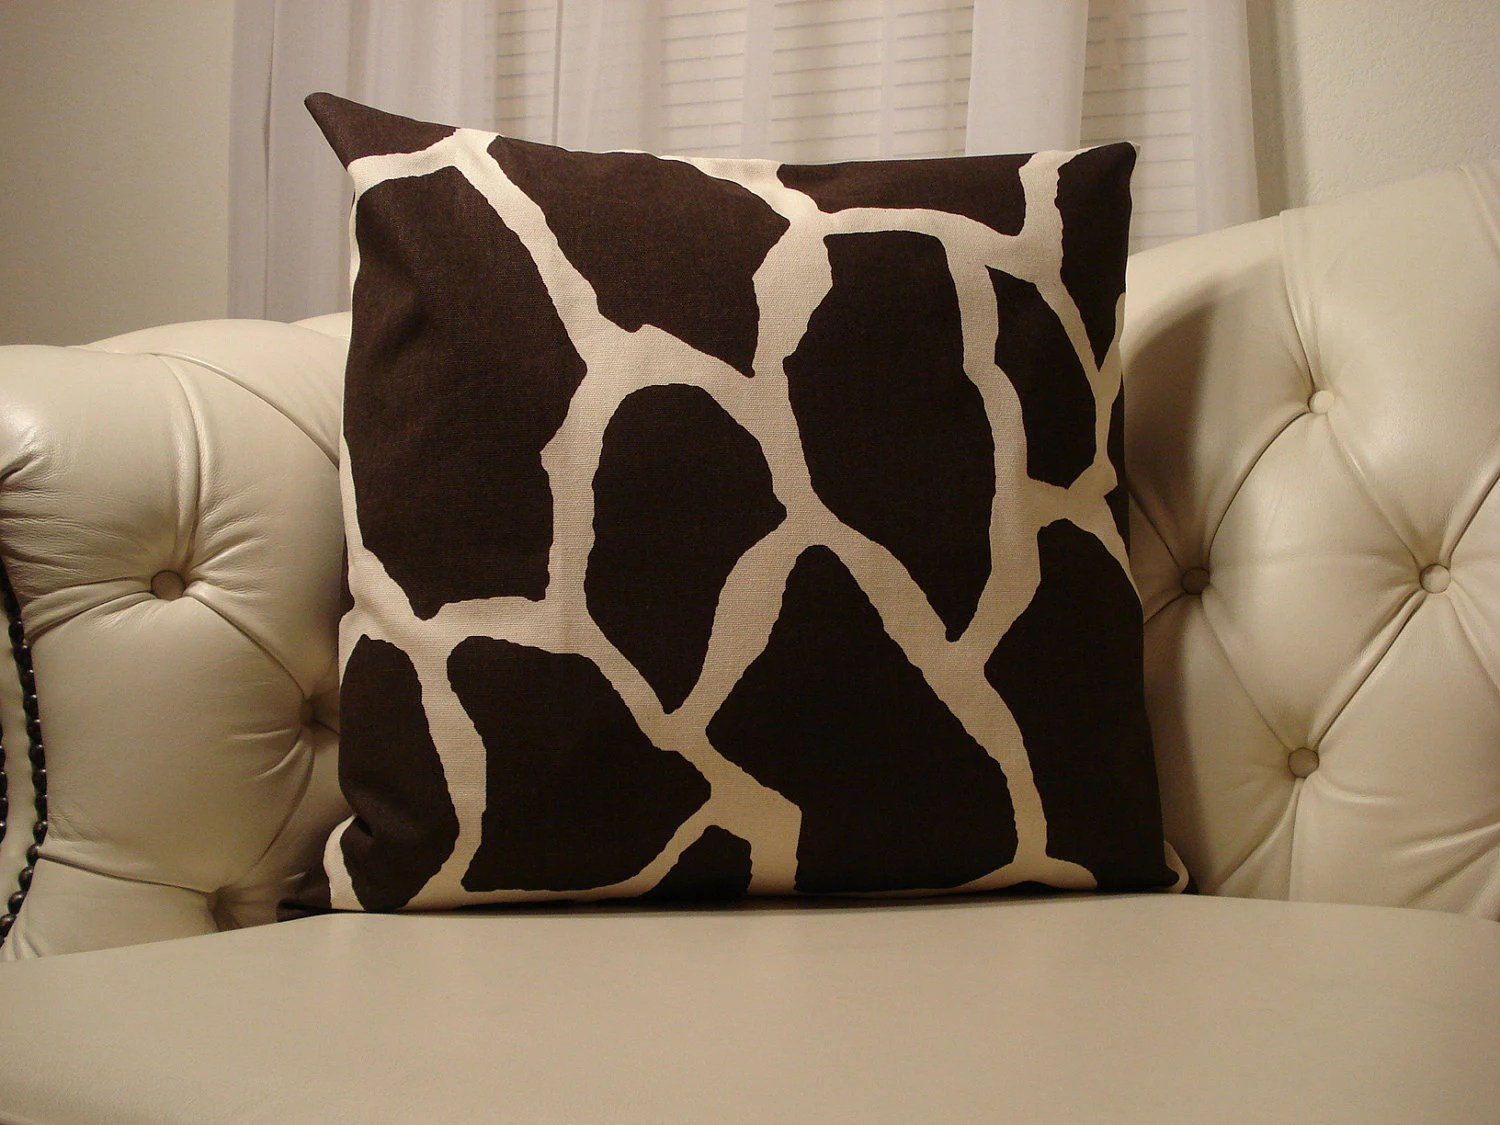 Giraffe Print Pillow Cover and Insert